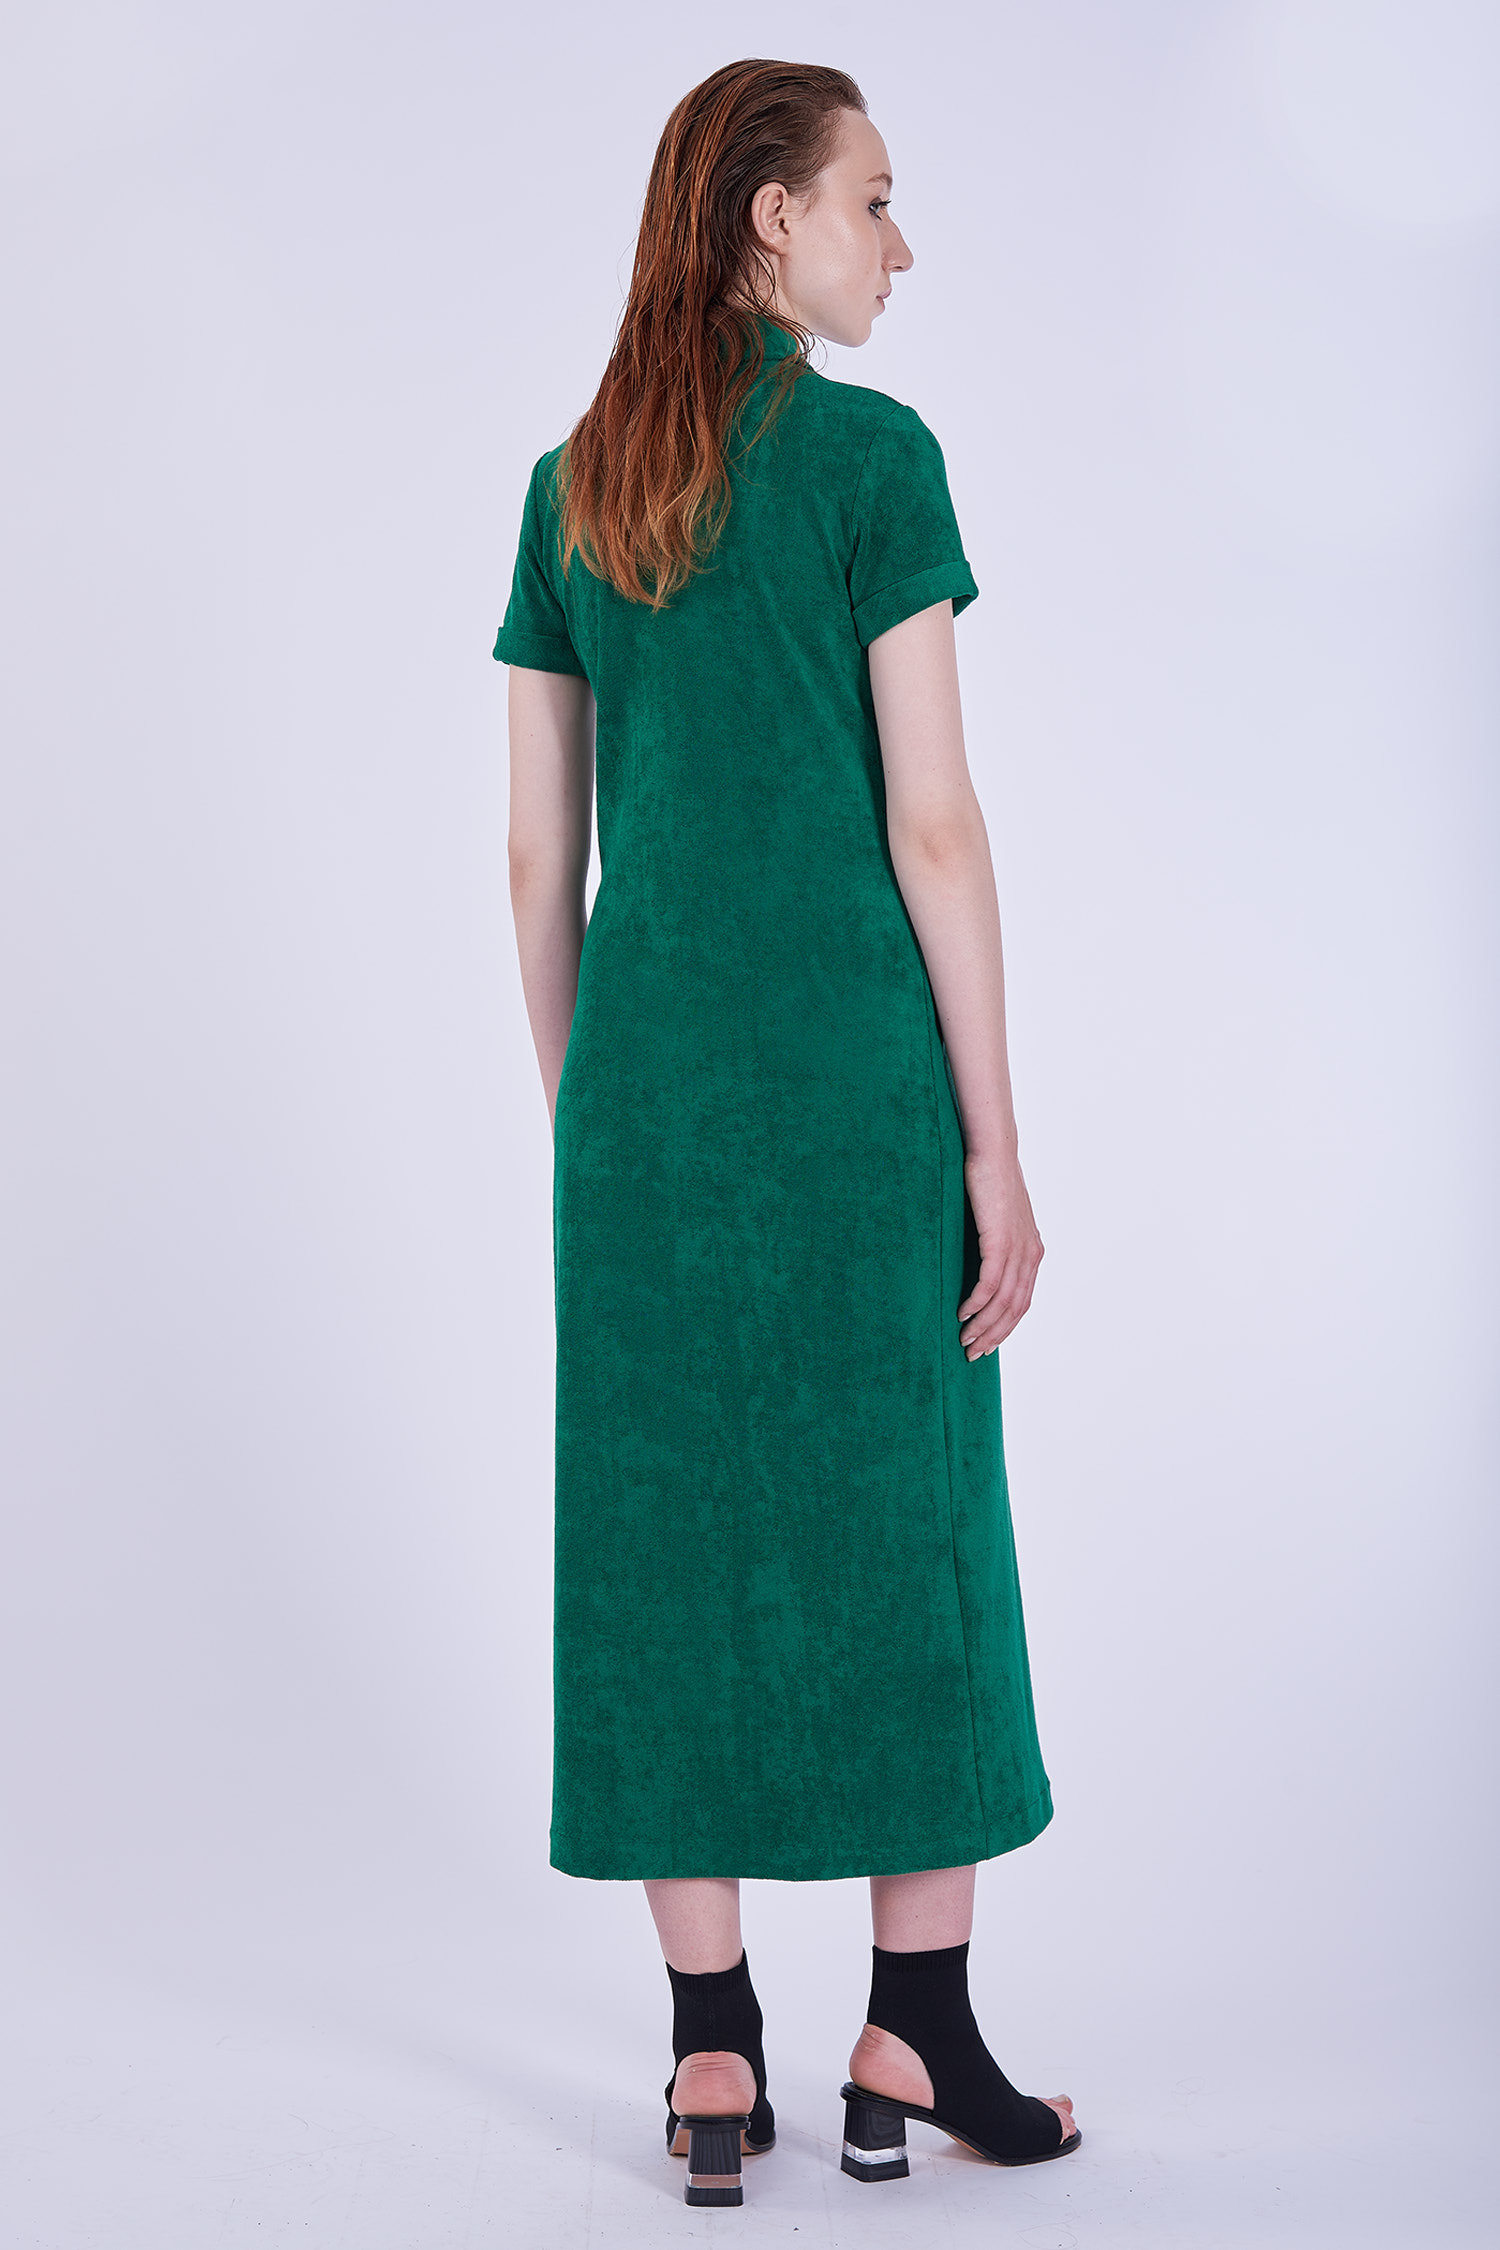 Acephala Ps2020 Green Long Terry Cotton Dress Sukienka Zielona Frotte Dluga Back 2